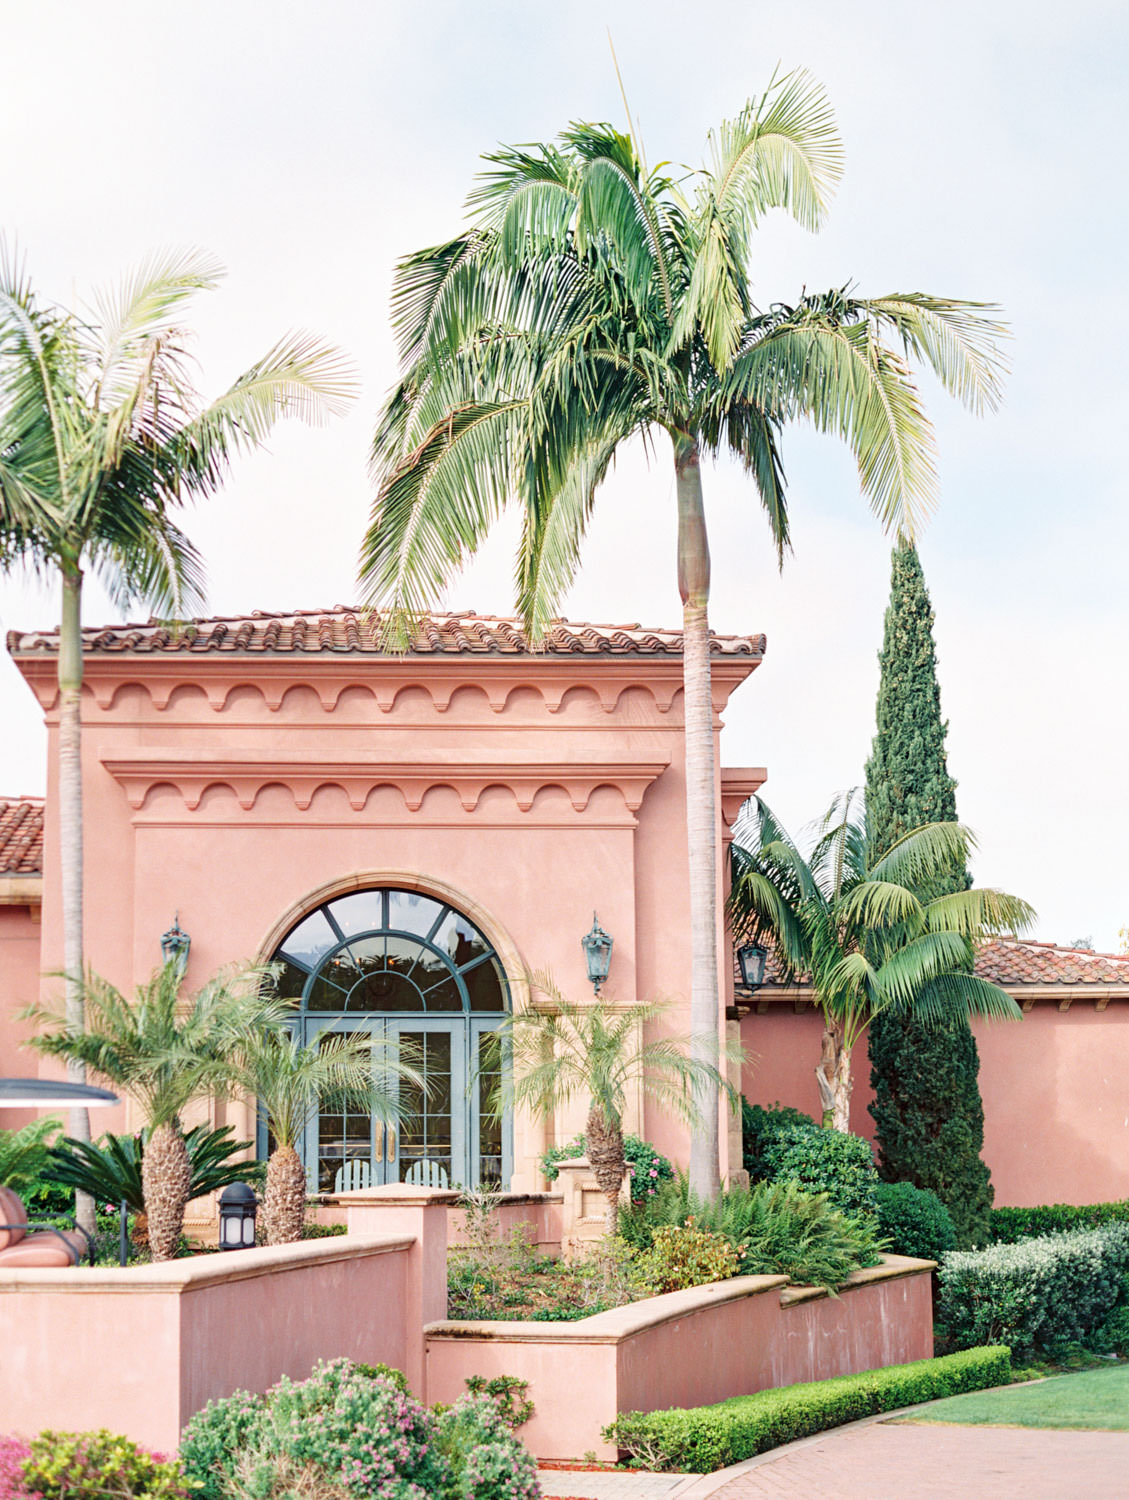 Fairmont Grand del Mar wedding published on Martha Stewart Weddings